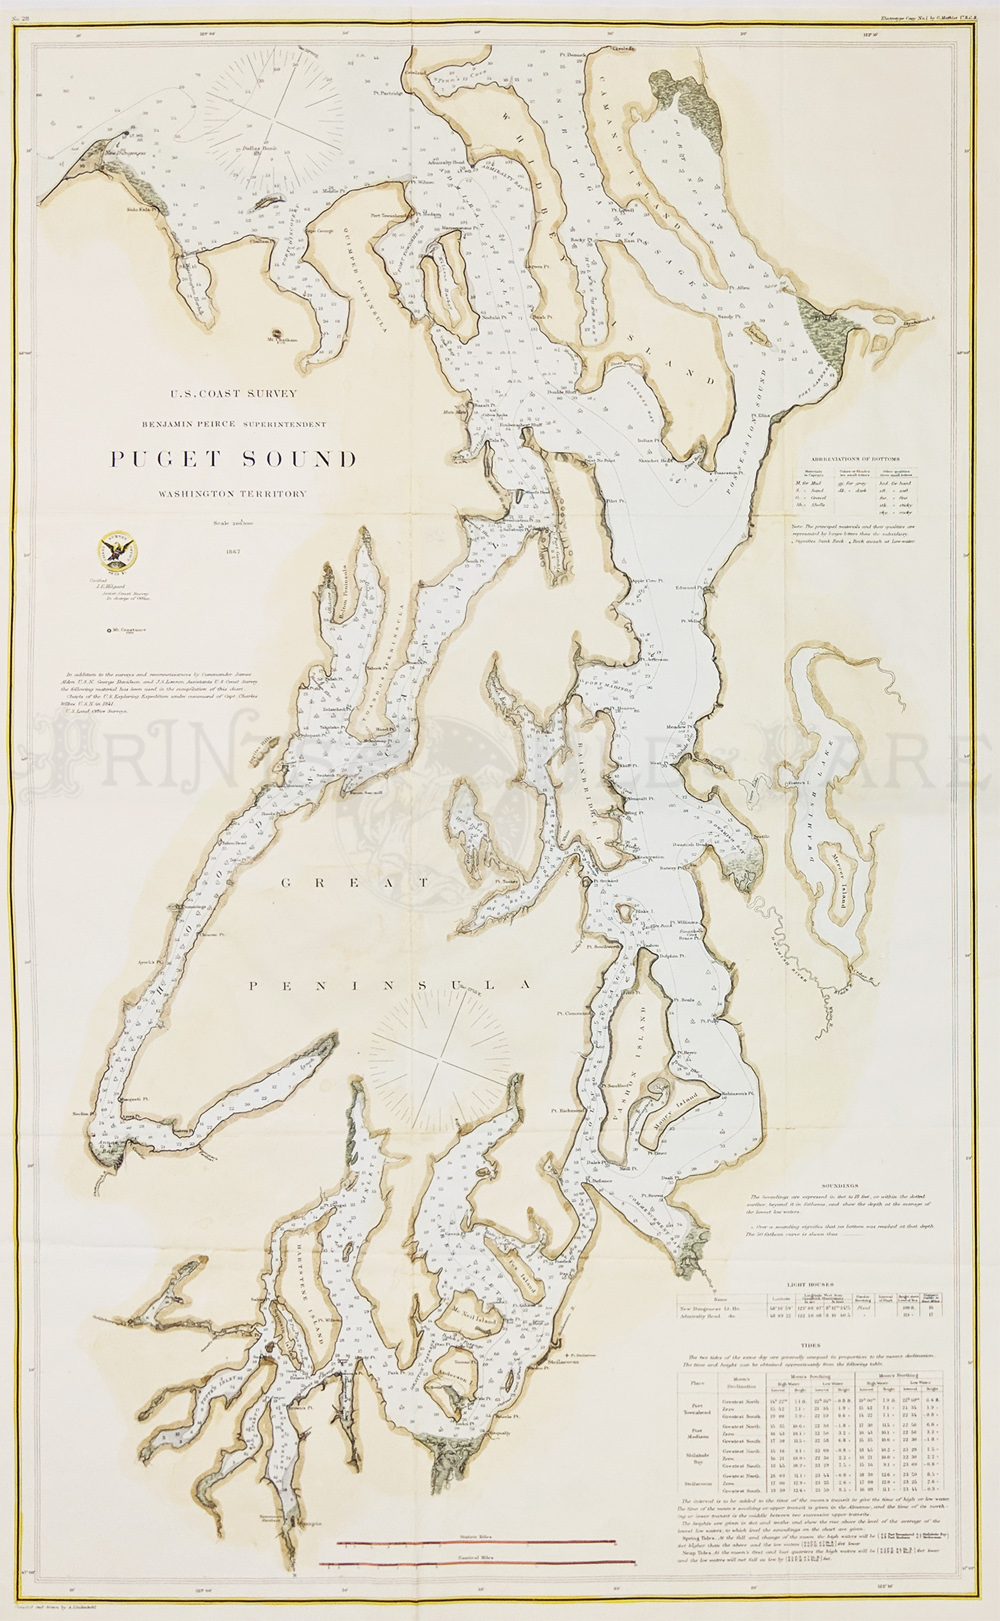 Prints old rare washington antique maps prints showing light houses water depths from pt demock down to olympia and tide chart for various nvjuhfo Images